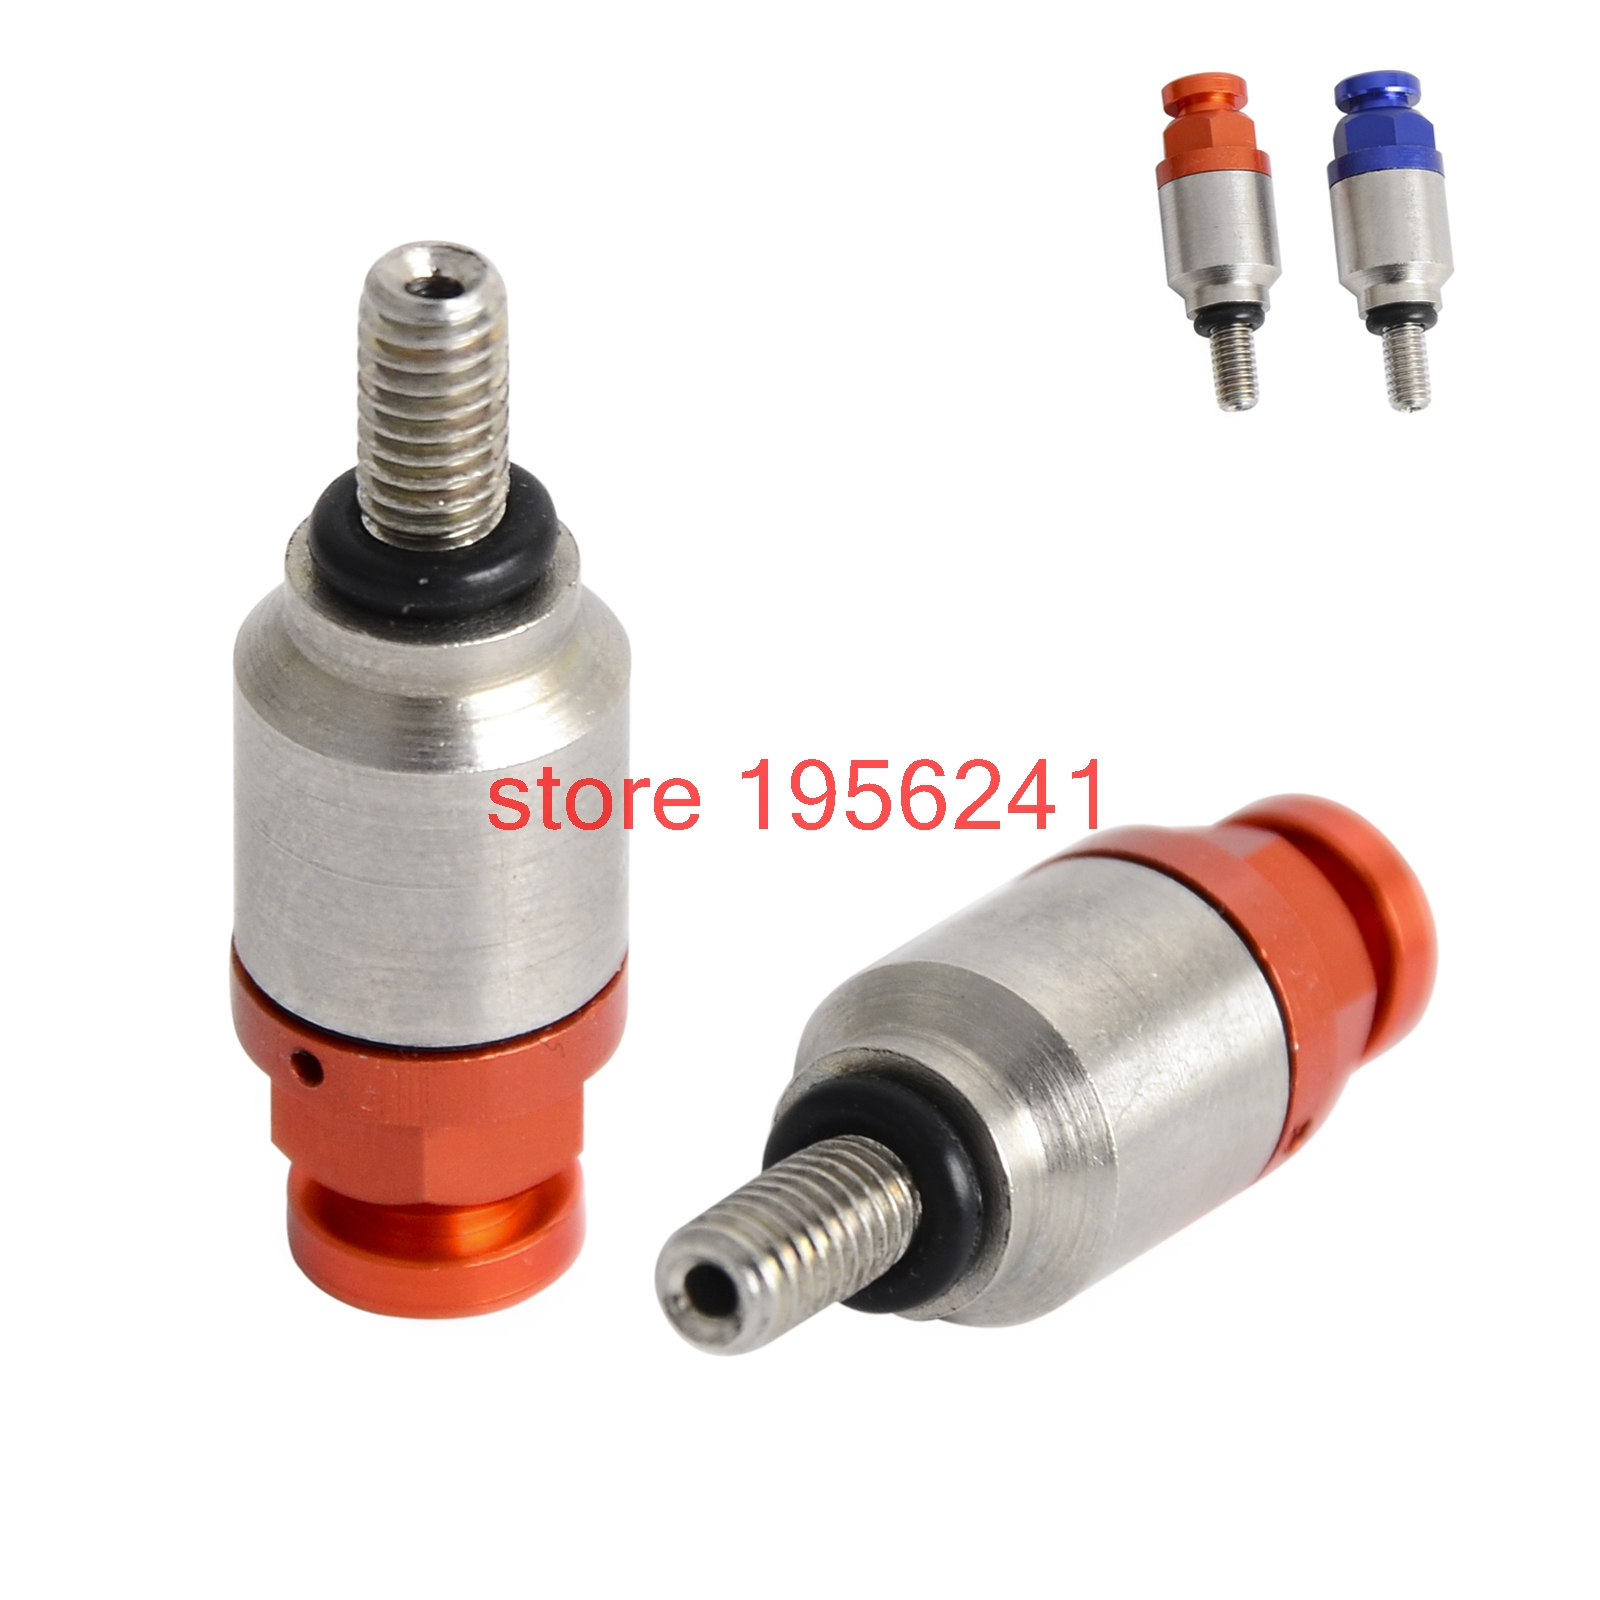 M4x0.7 Fork Air Bleeder Valves For KTM EXC SX SXF XC XCW 65 85 105 150 200 250 350 400 450 500 525 530 690 950 990 Adventure cnc stunt clutch lever easy pull cable system for ktm exc excf xc xcf xcw xcfw mx egs sx sxf sxs smr 50 65 85 125 150 200 250